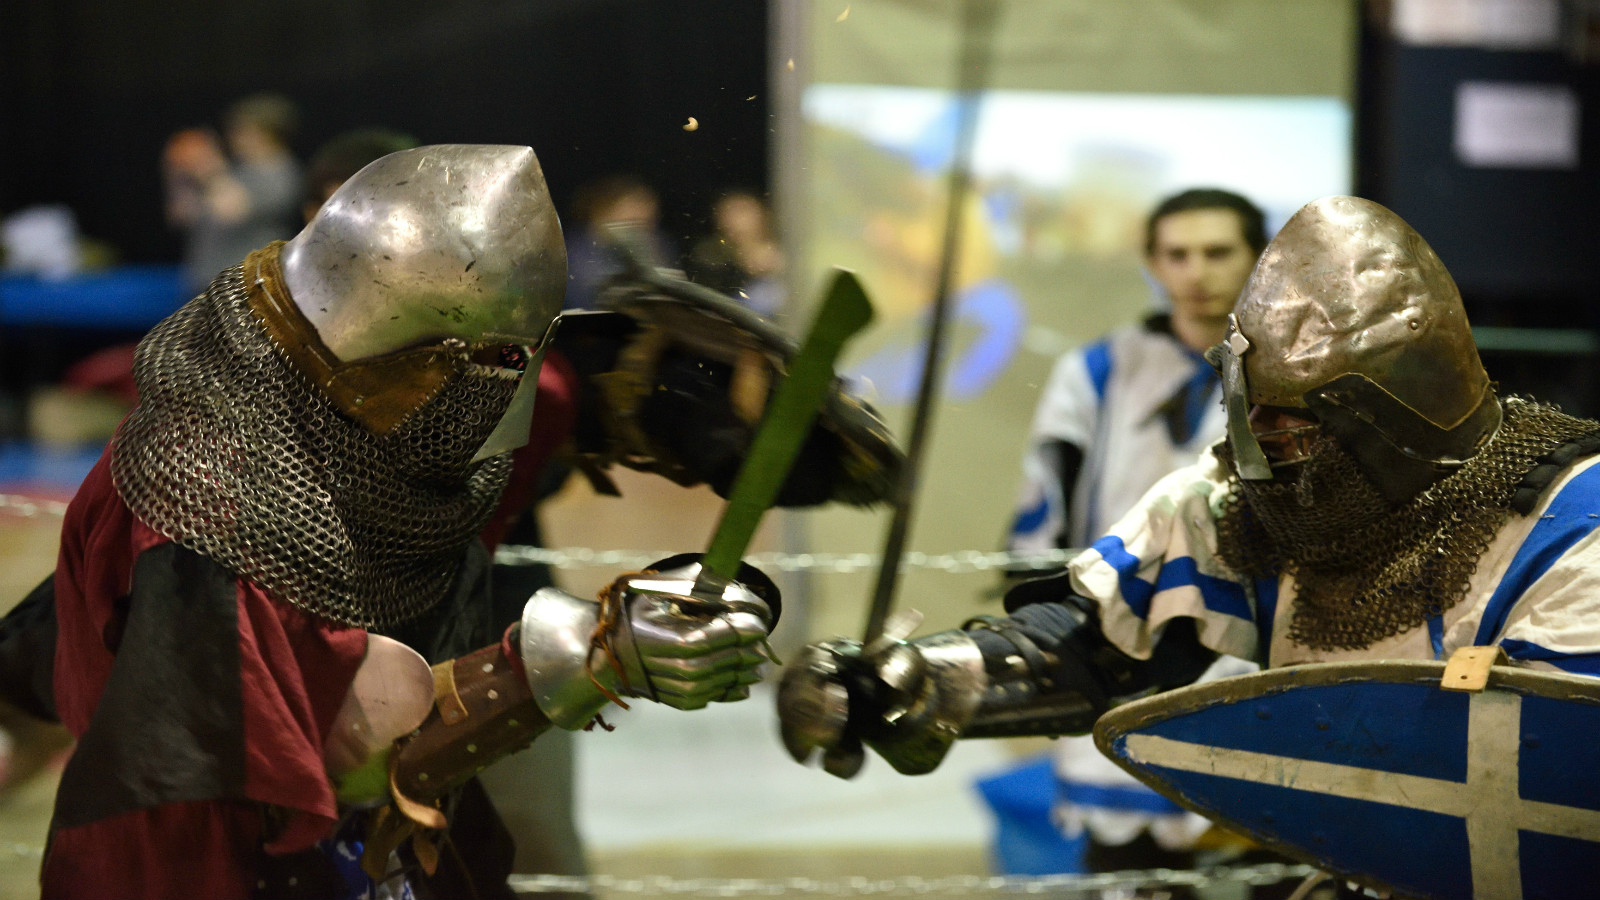 Participants resting after the World Medieval Fighting Championship -Israeli challenge, Jan. 23, 2016. Photo by Gili Yaari/FLASH90